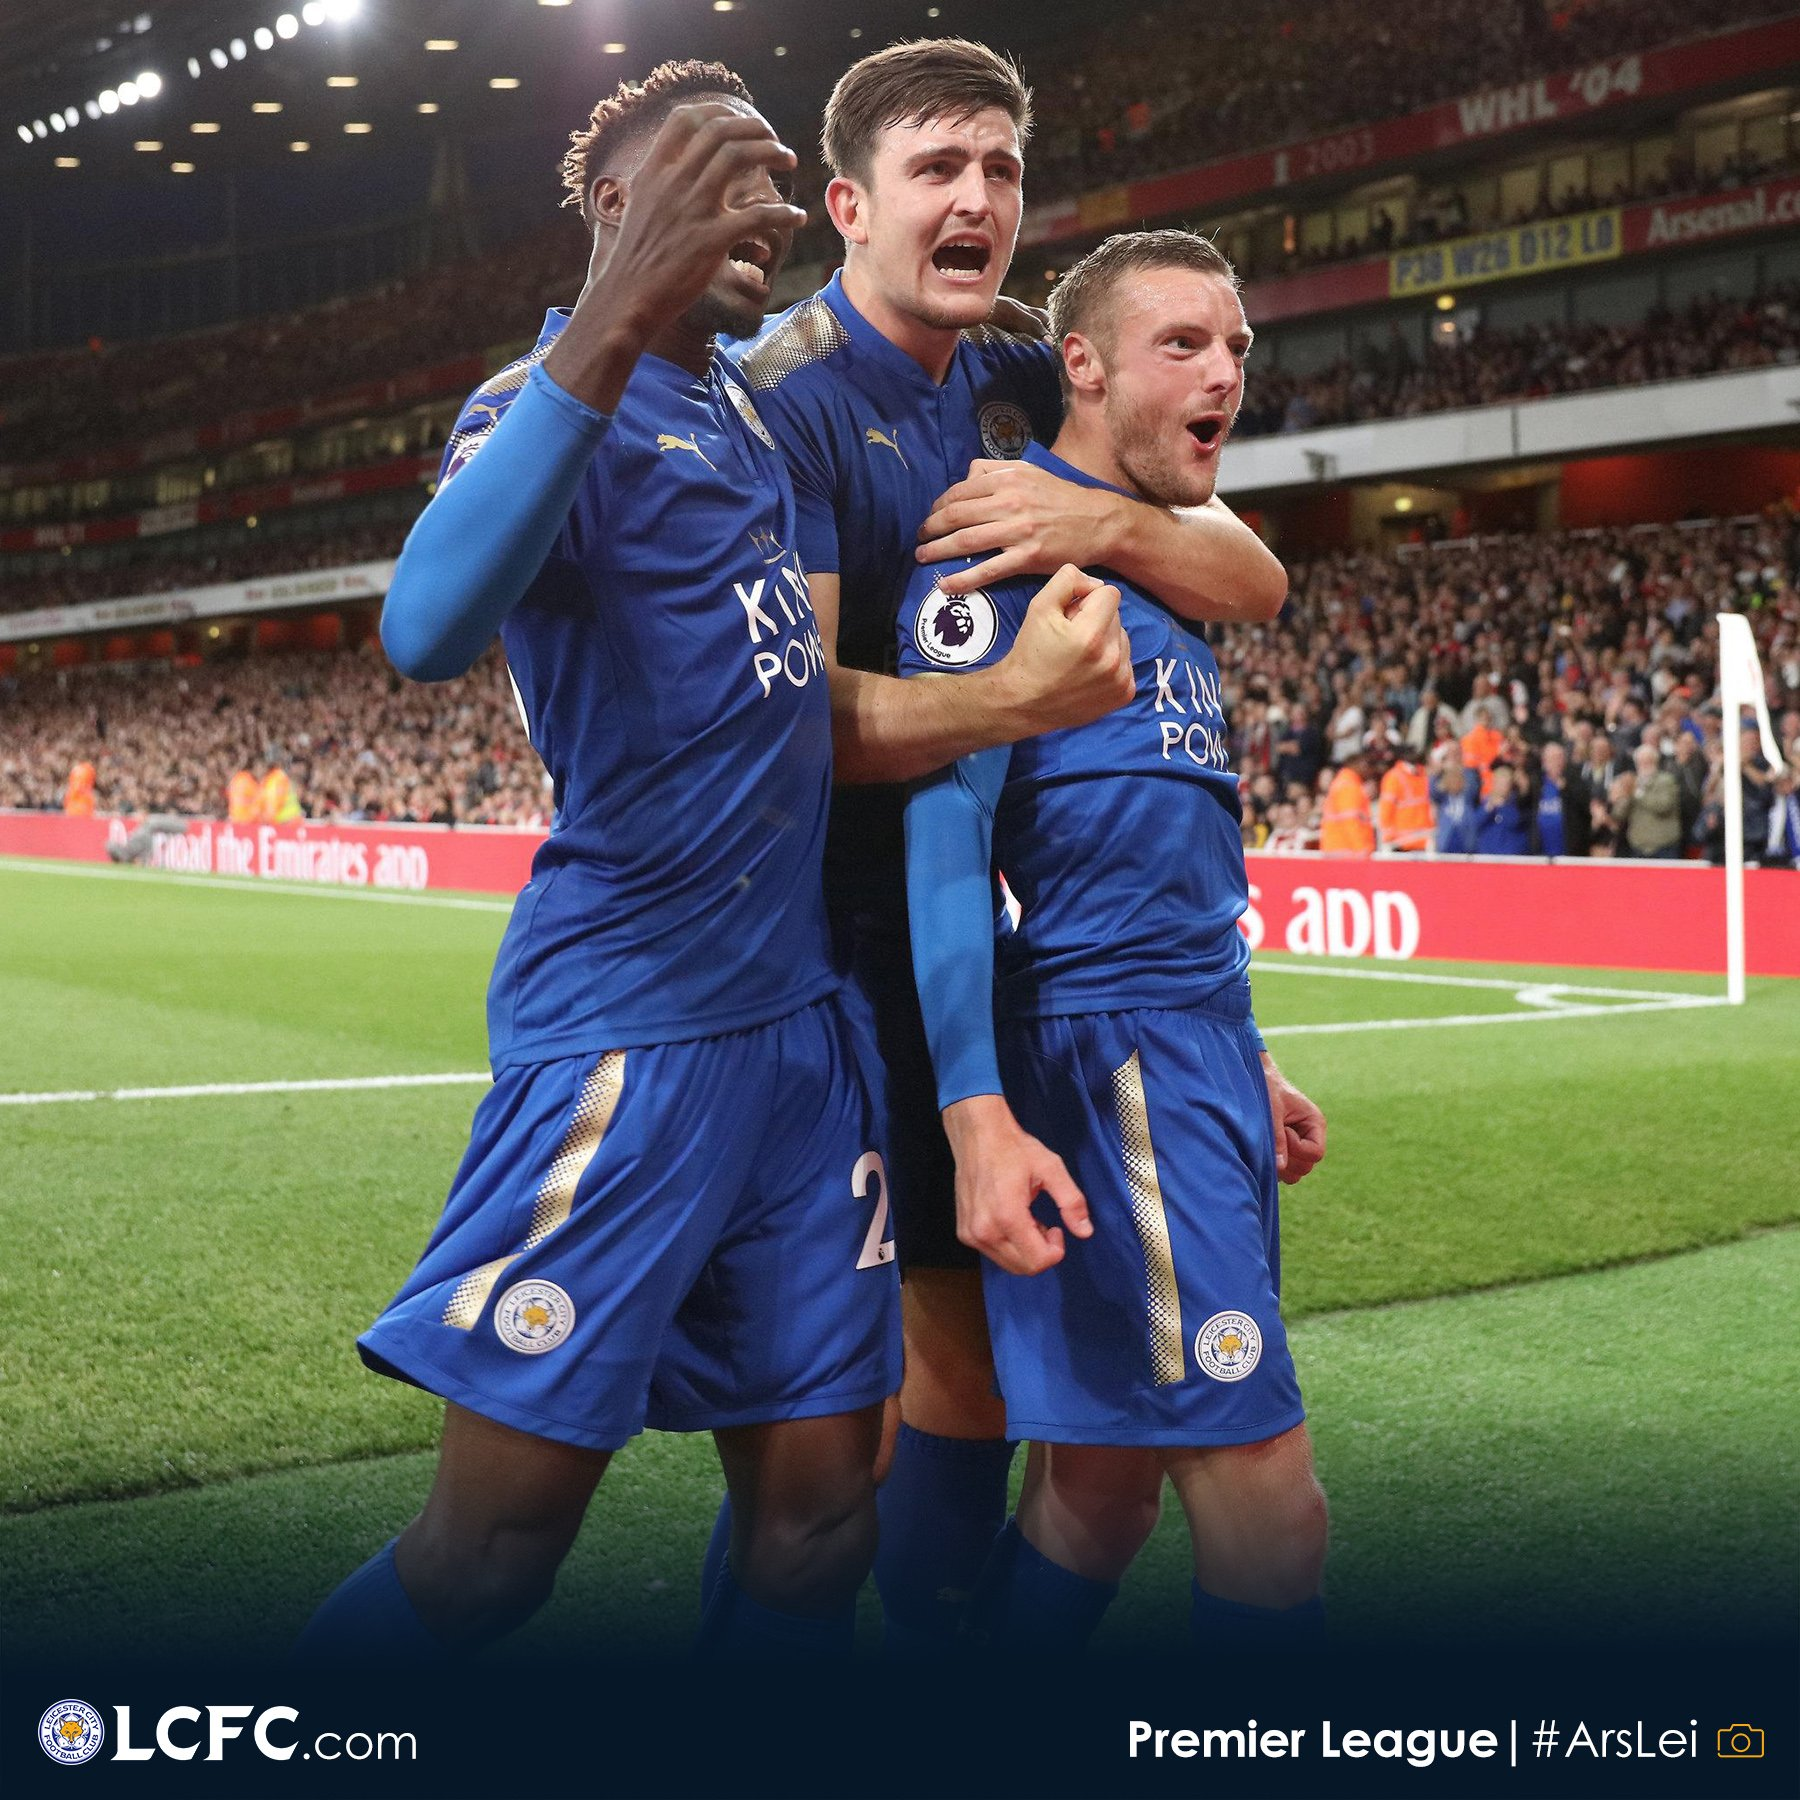 YES WE CAN! Ndidi Upbeat After Leicester's 'Great Fight' Vs Arsenal